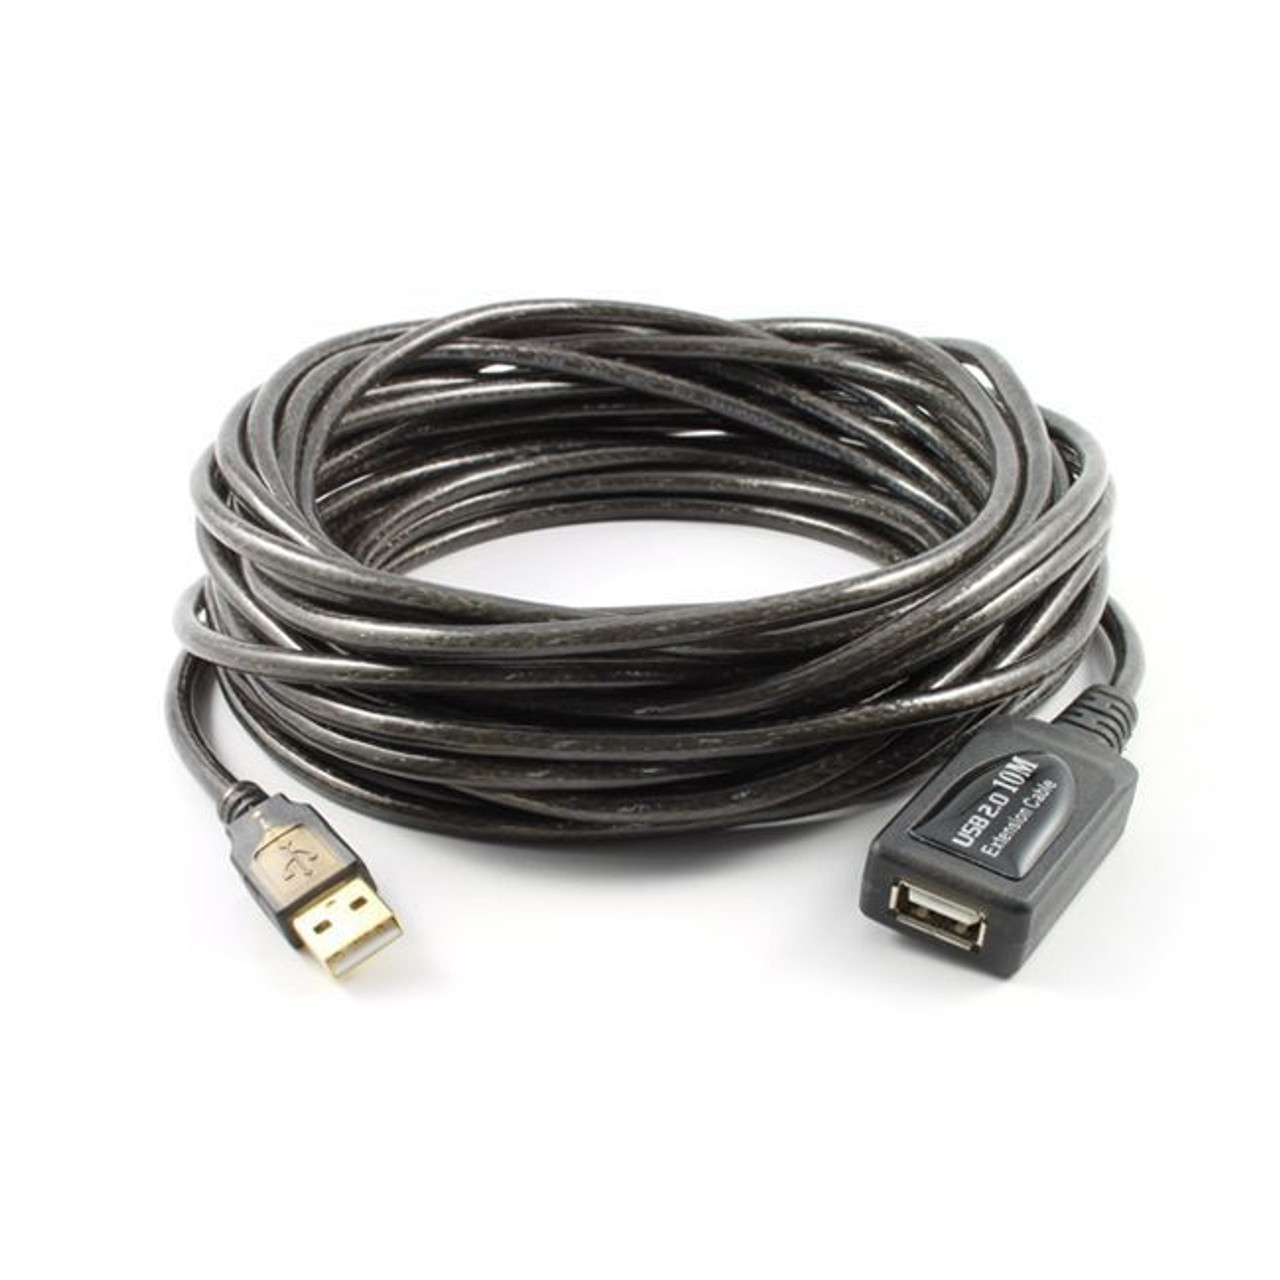 Image for 20M USB 2.0 AM-AF Active Extension Cable Black CX Computer Superstore